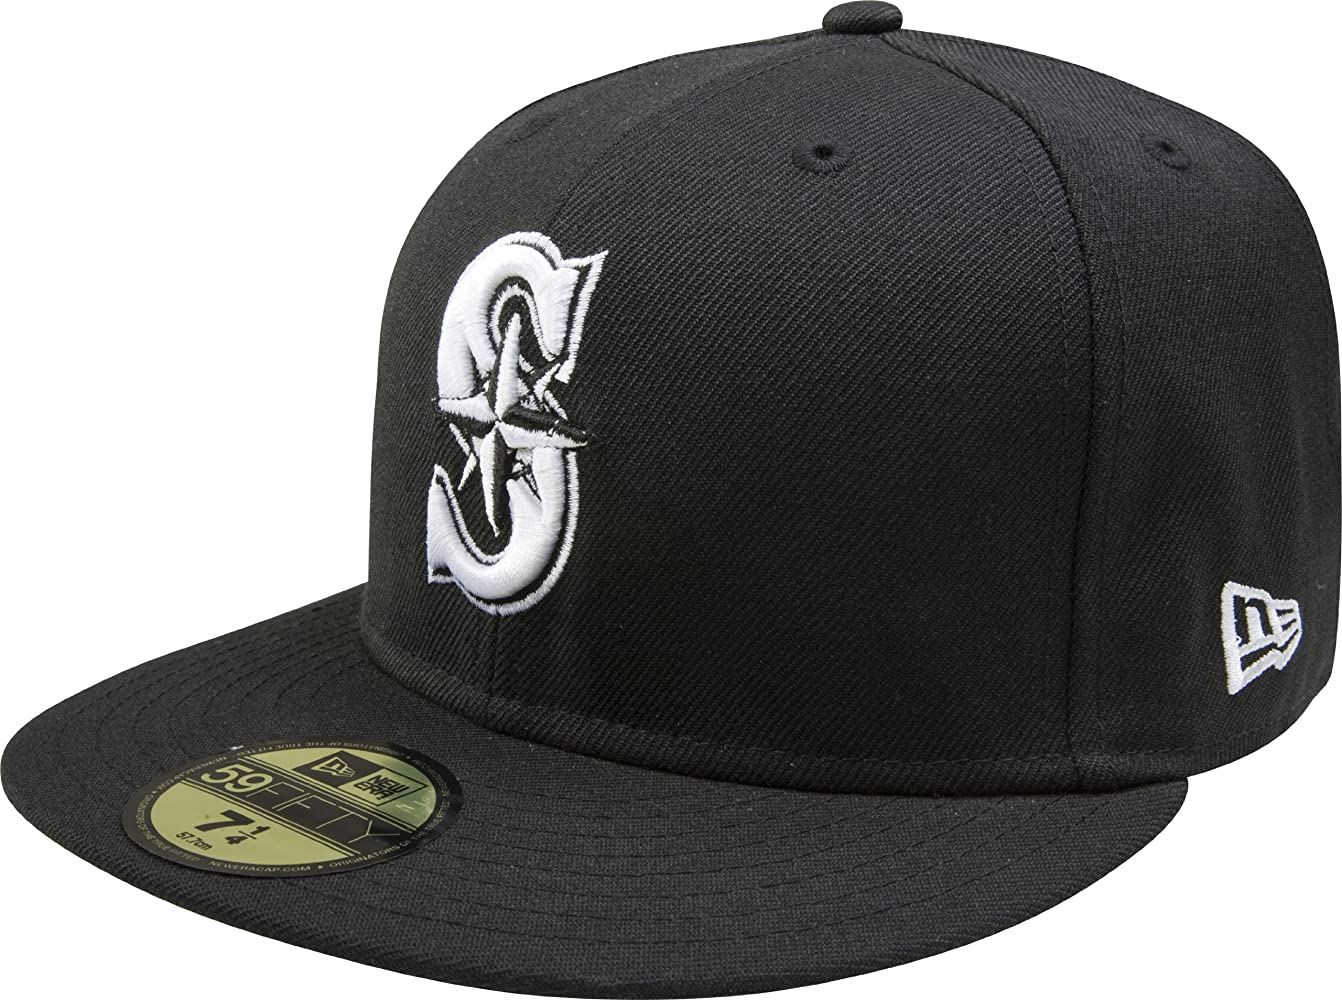 681a0971 MLB Seattle Mariners Black with White 59FIFTY Fitted Cap, 7 3/4